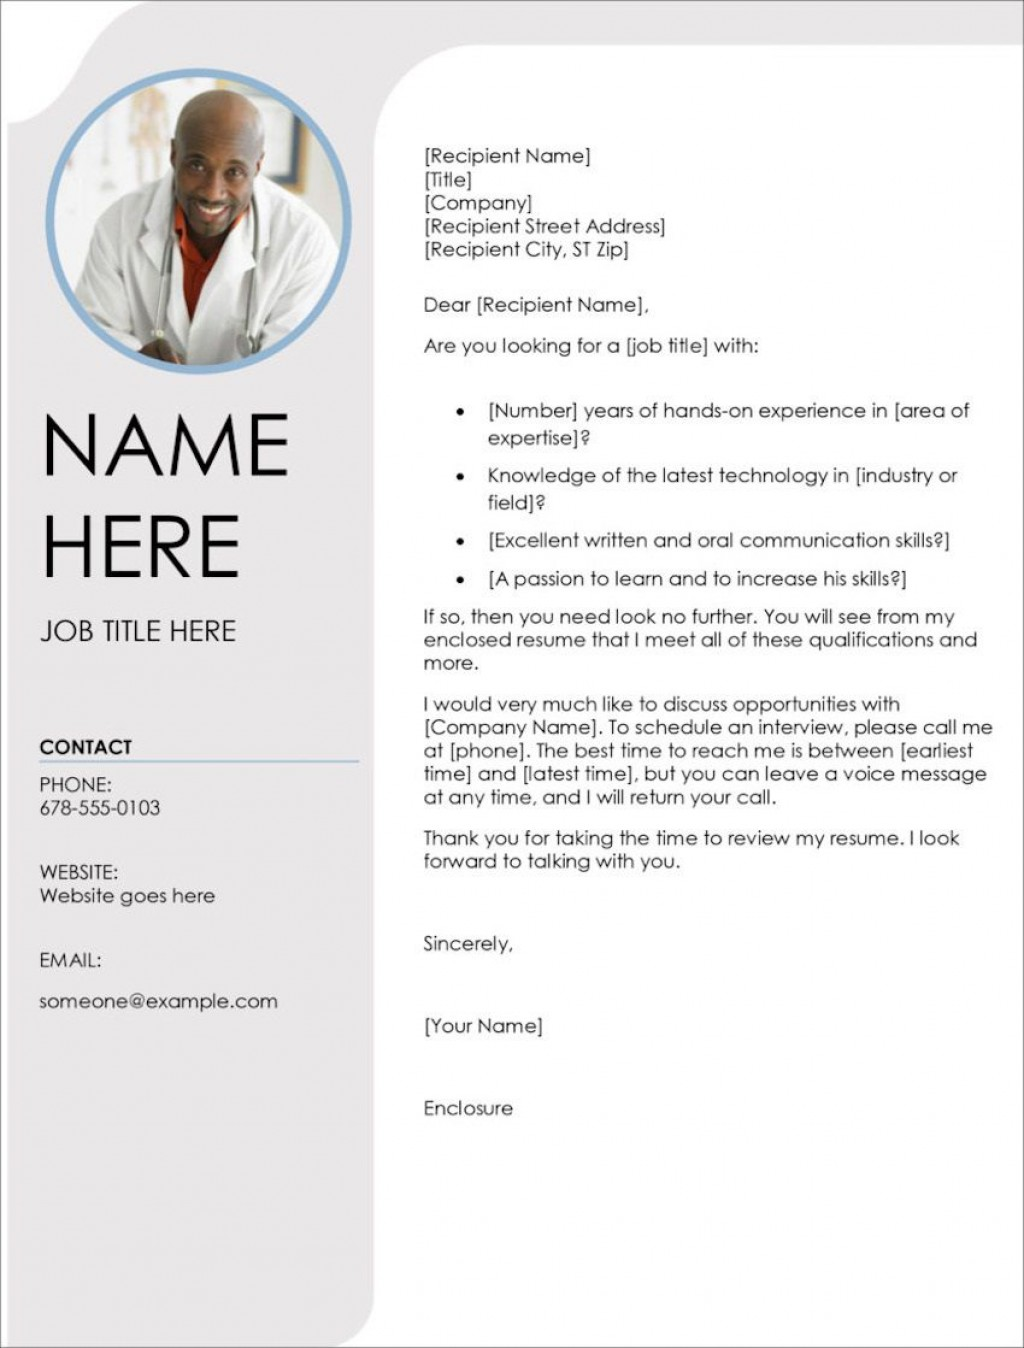 007 Staggering Microsoft Cover Letter Template 2020 Concept Large